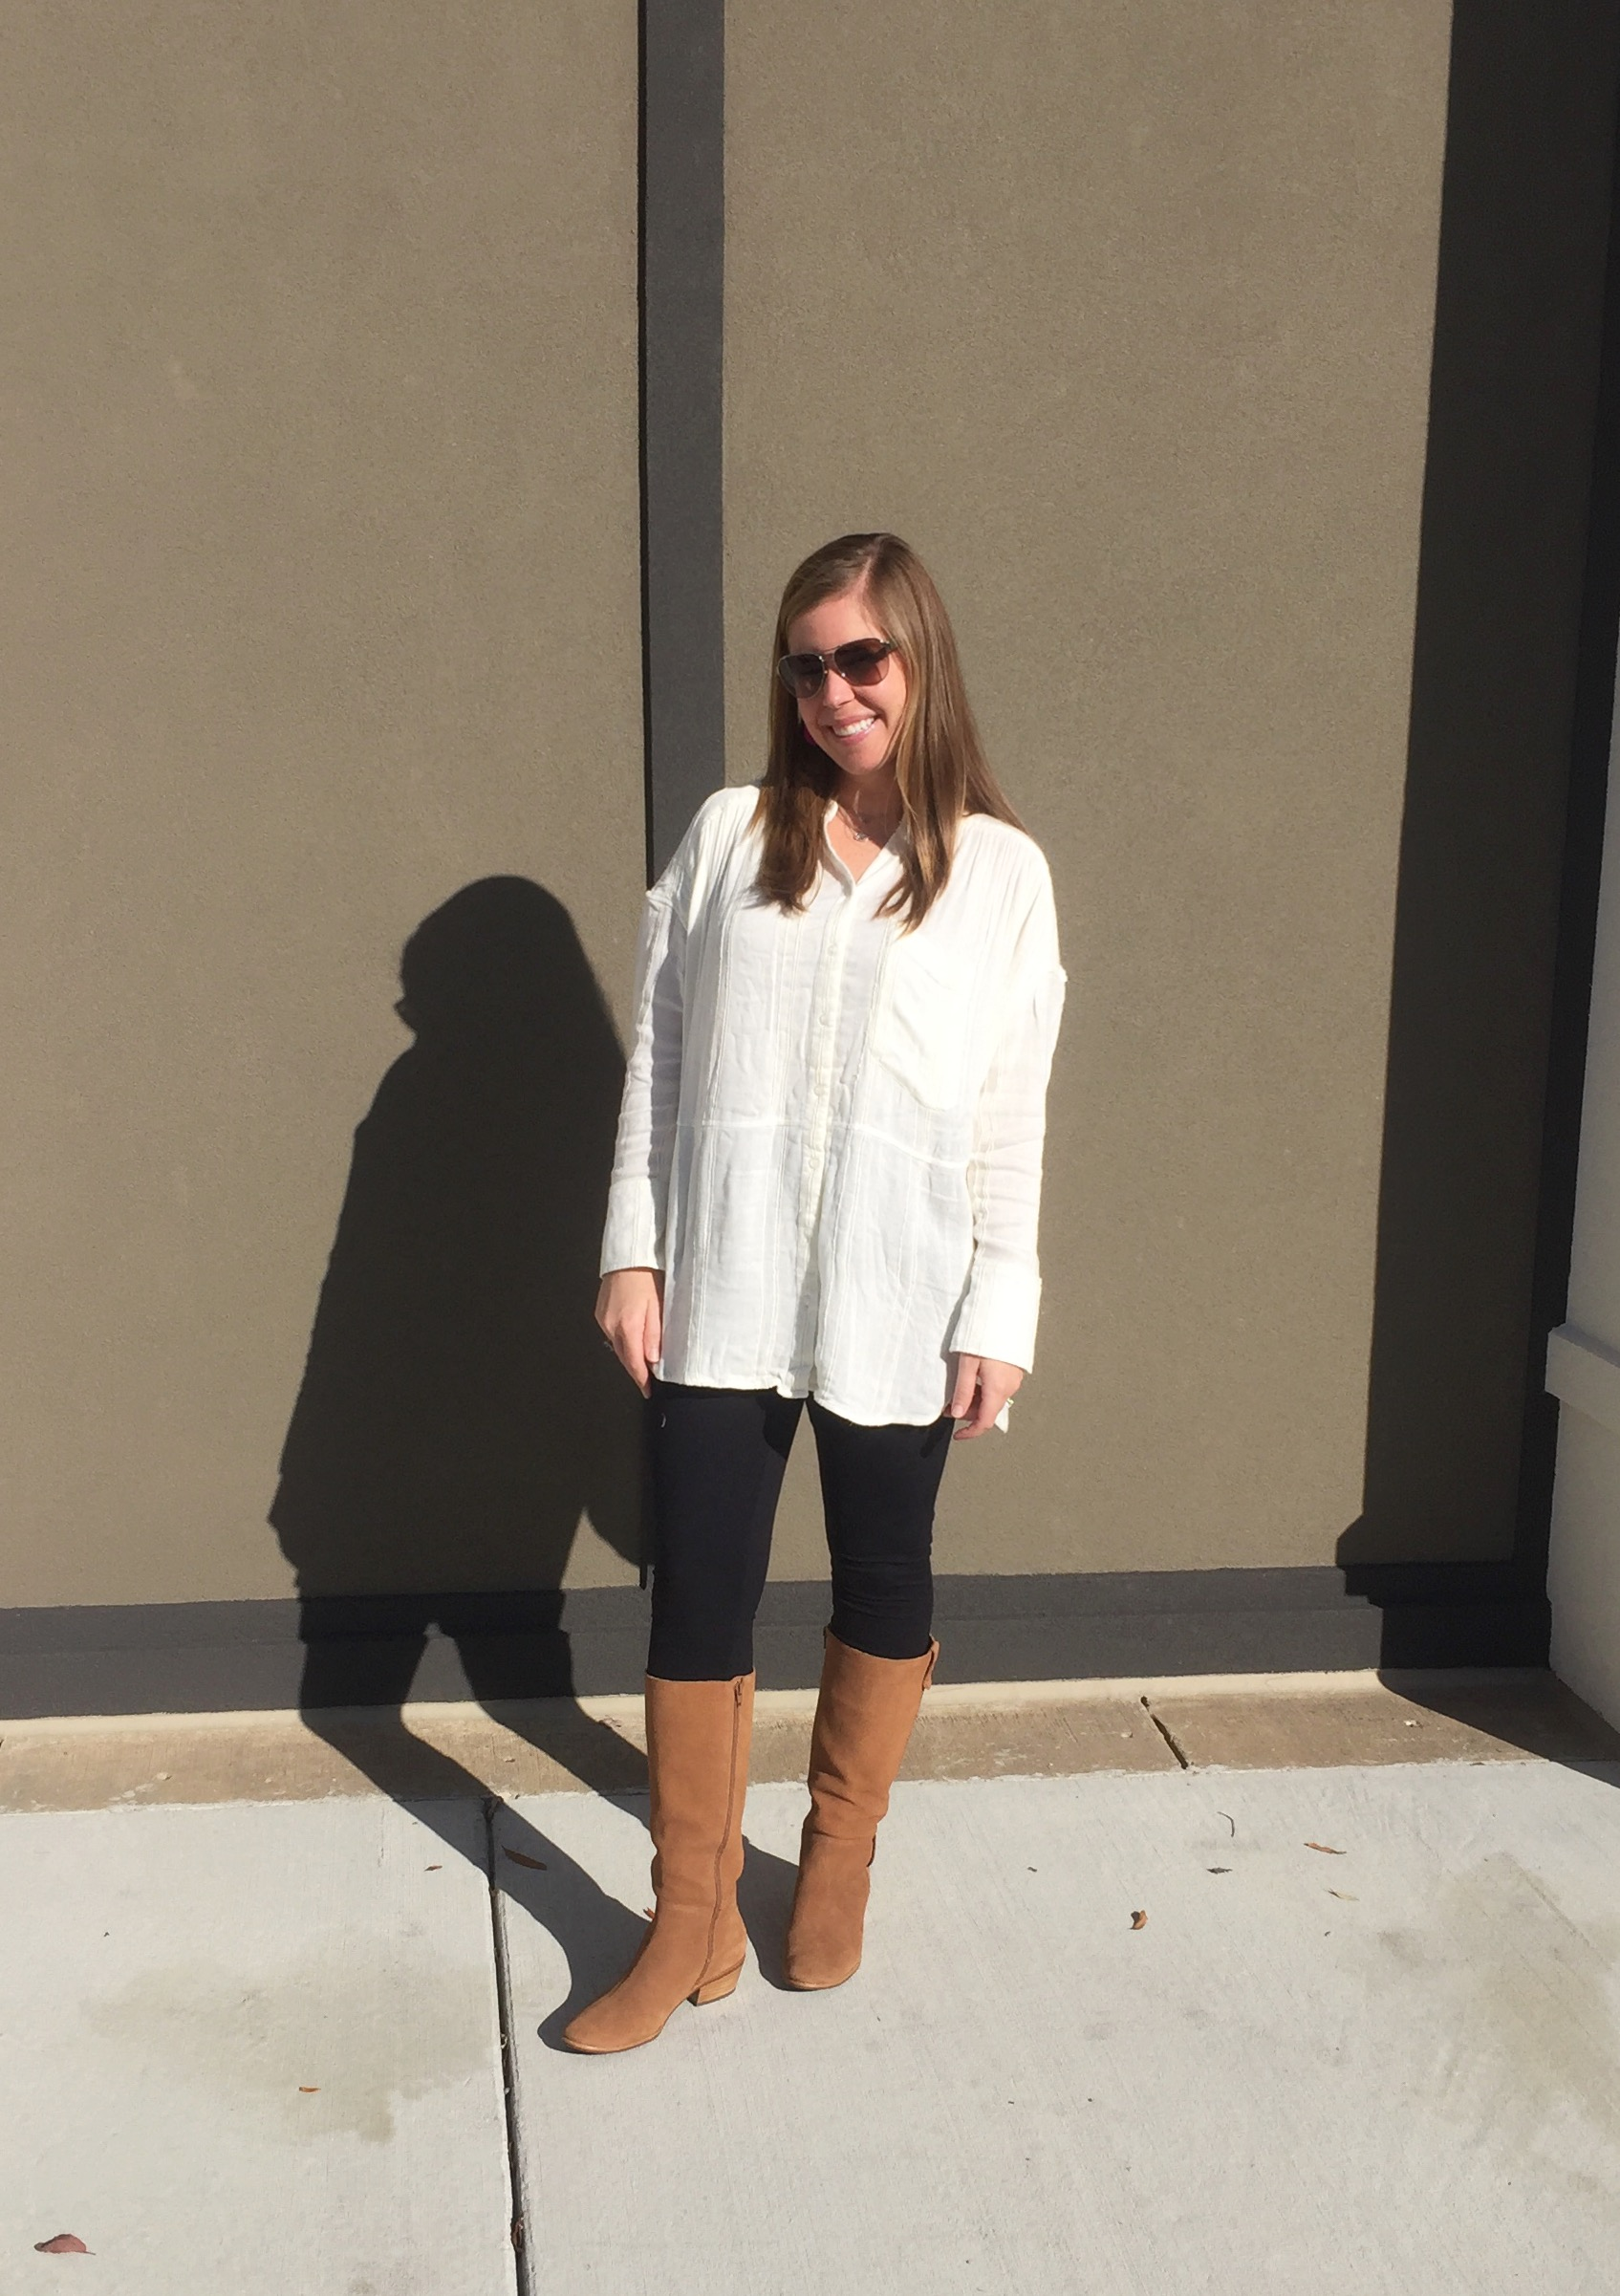 White Top  //  Leggings  //  Boots  //  Sunglasses  //  Earrings  //  Necklace